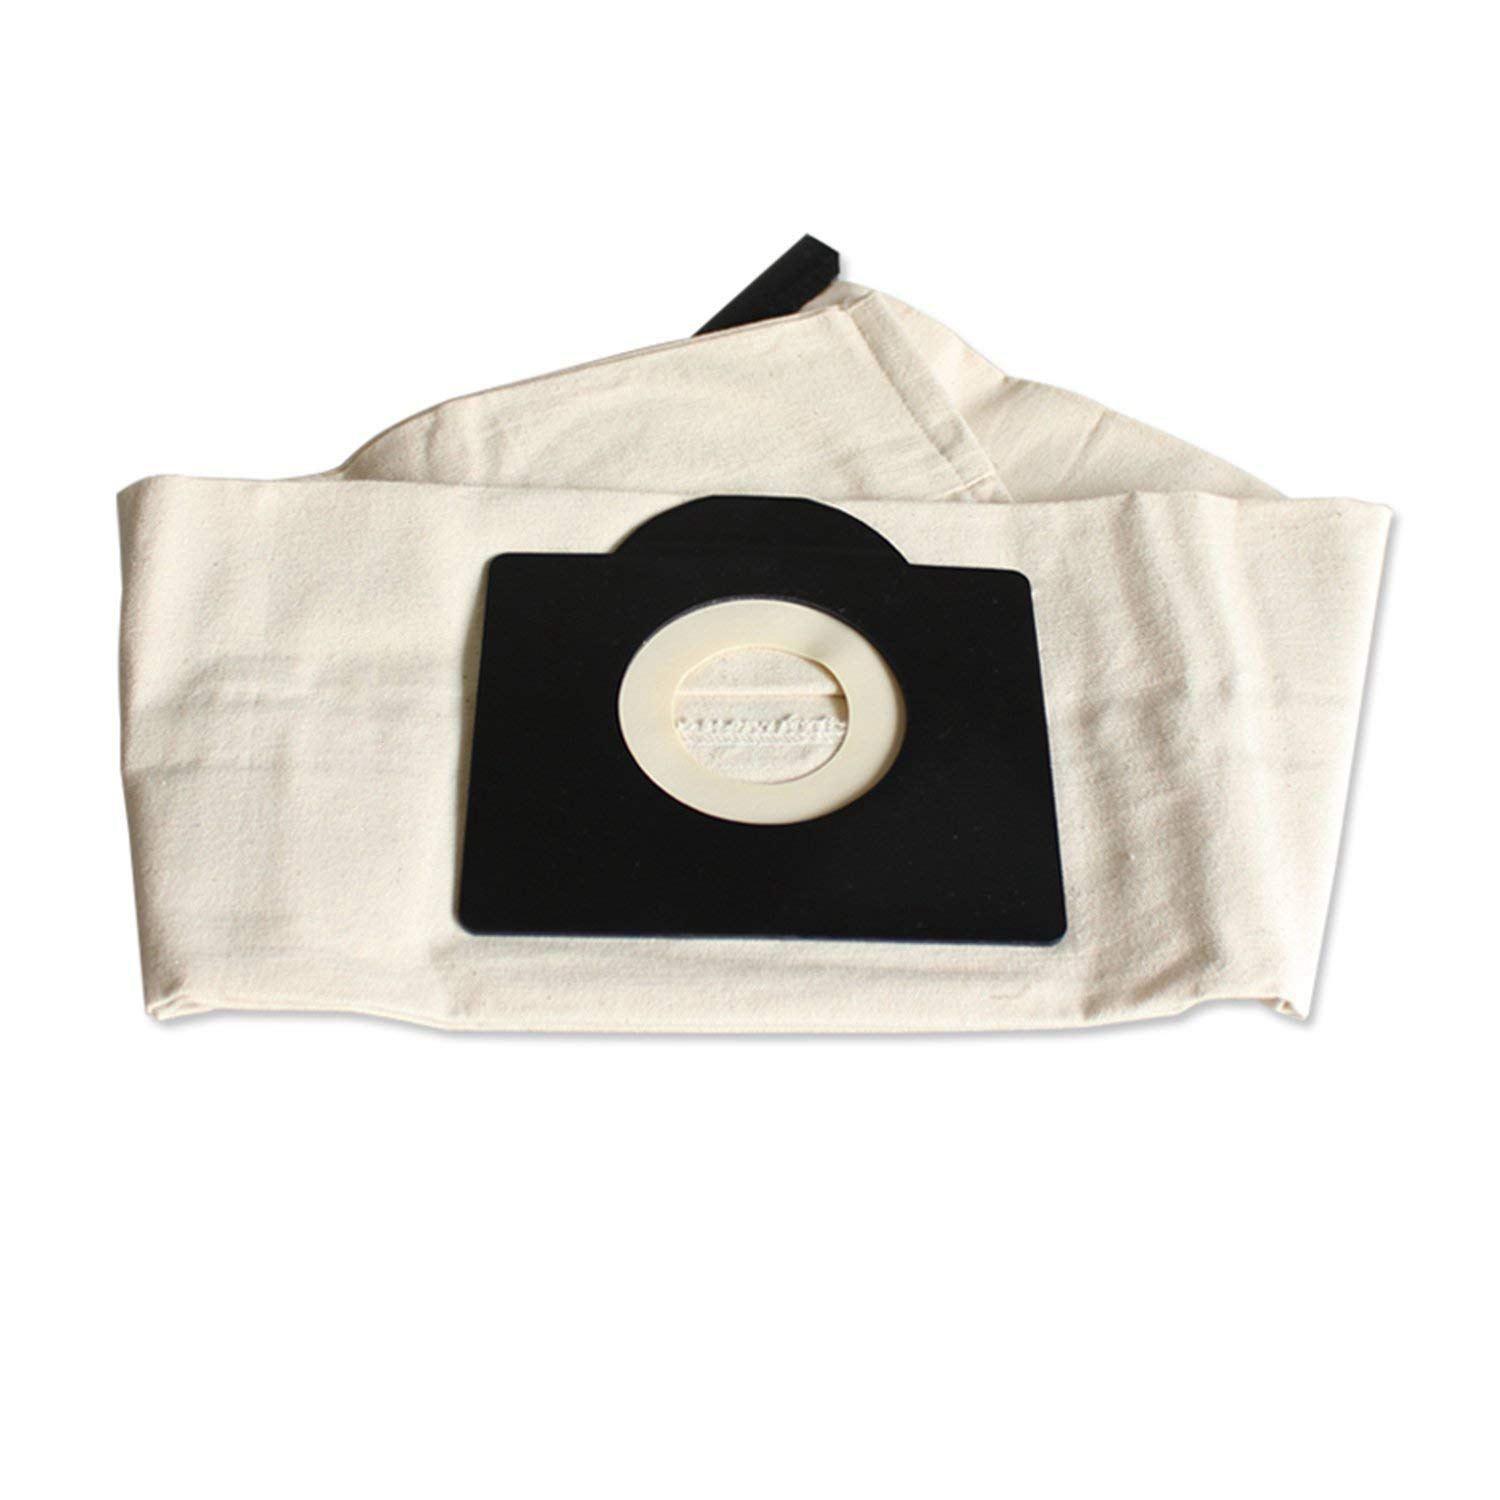 Hot Sale 100% Brand New Universal Vacuum Cleaner Bags Washable Dust Bag For Rowenta ZR814 Karcher HR6675